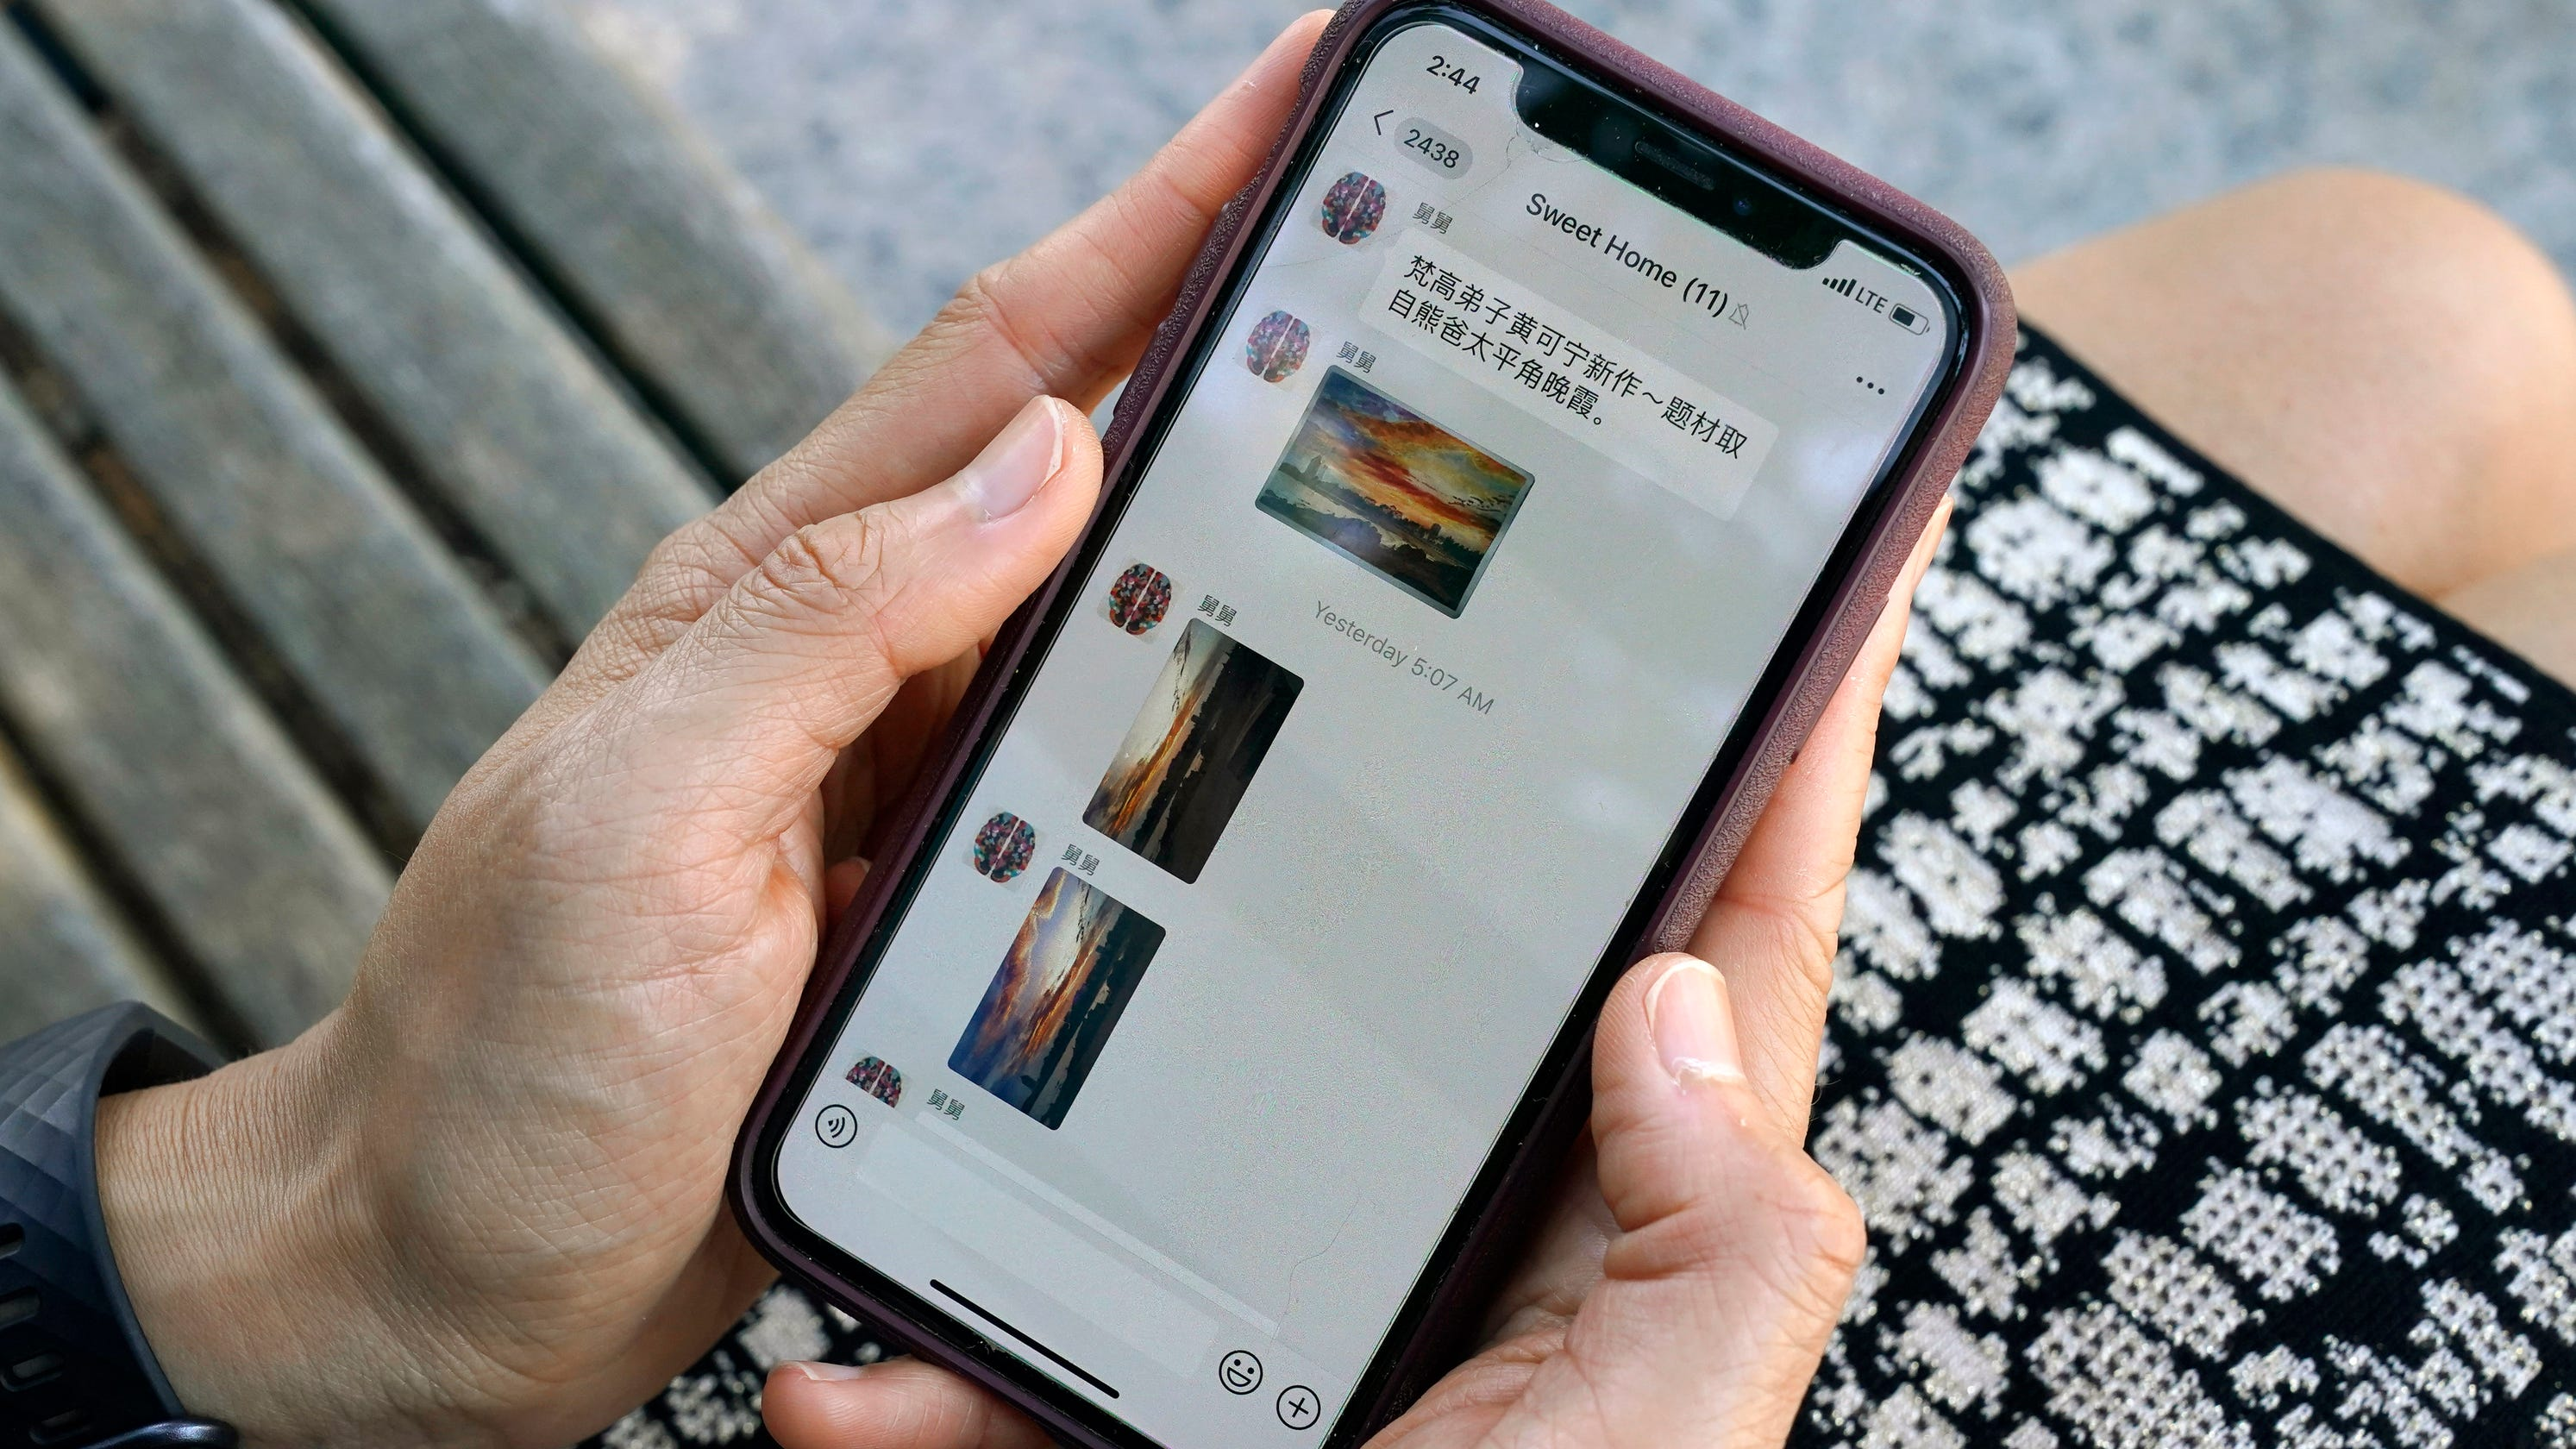 No WeChat? Doing business with China and reaching family will change